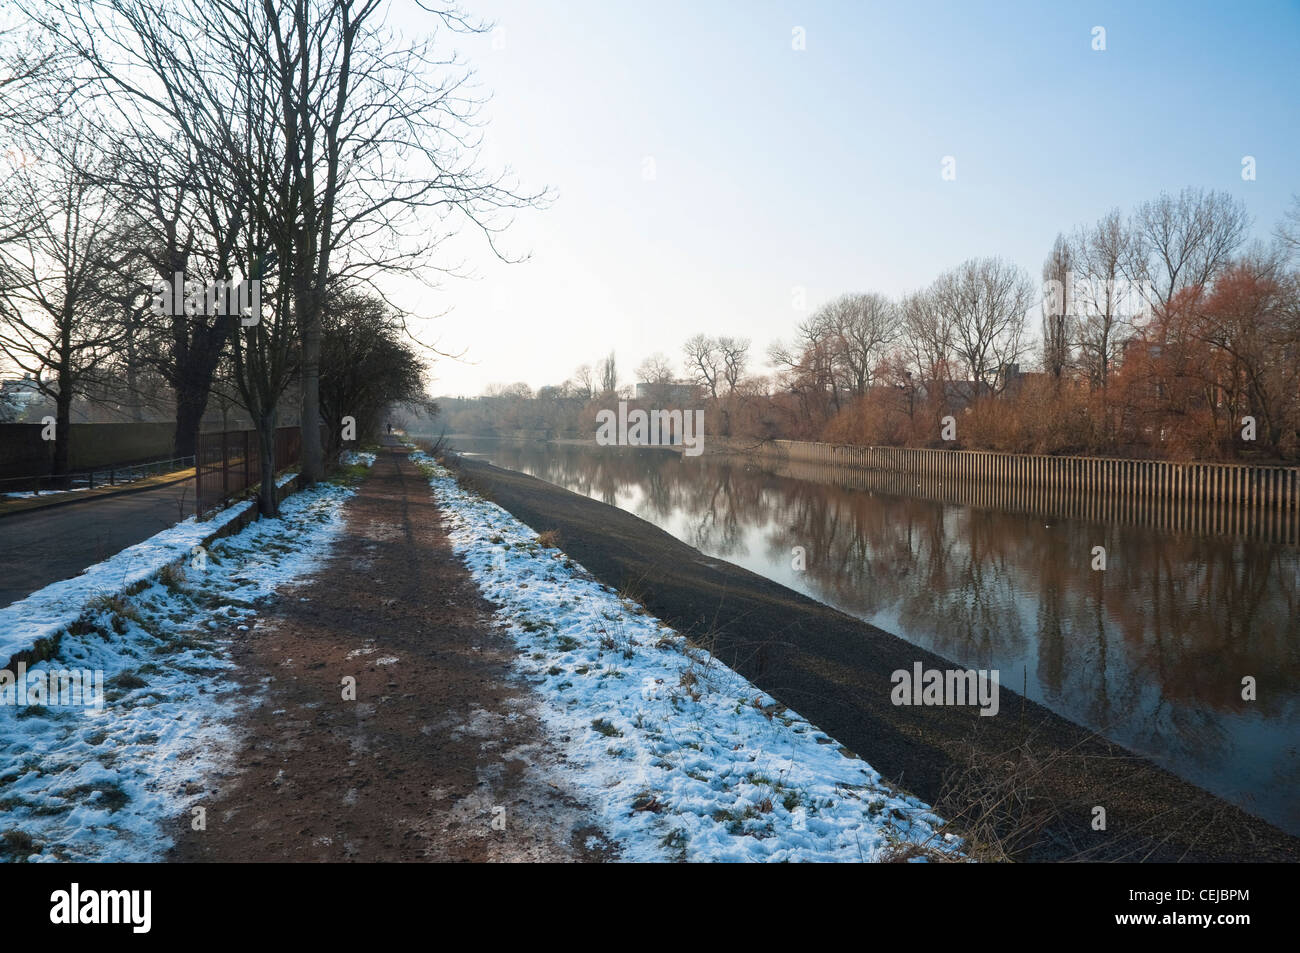 Winter view of the towpath along the River Thames. Viewed from the Kew Bridge bank looking across the river to Brentford. - Stock Image